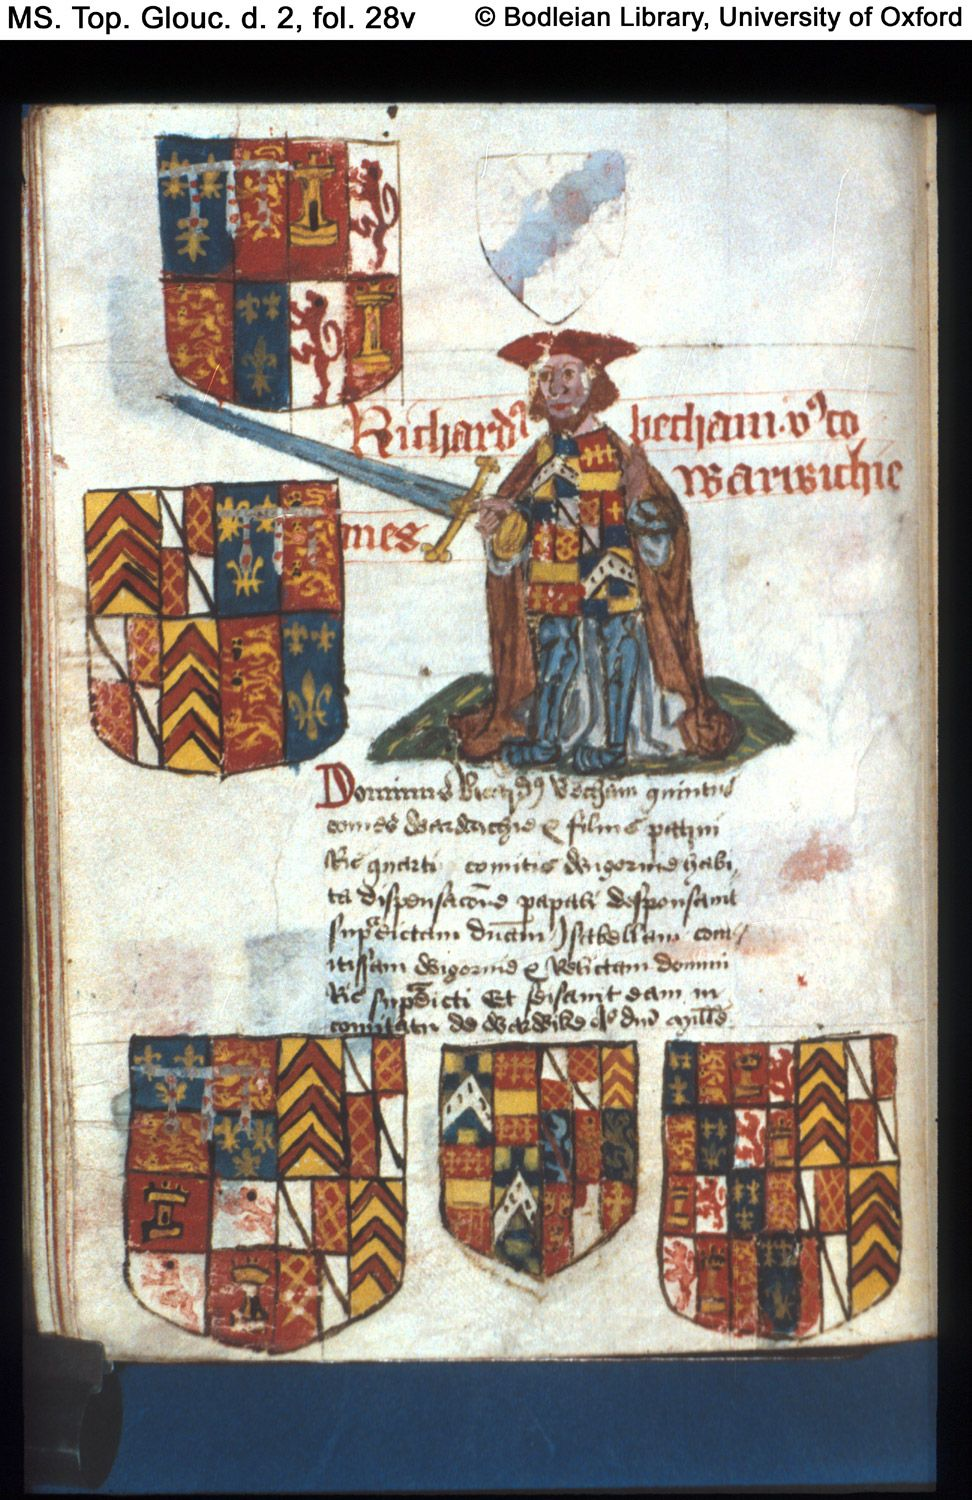 Detail from MS. Top. Glouc. d. 2 Founders' and benefectors' book of Tewkesbury Abbey, in Latin England, Tewkesbury; 16th century, first quarter fol. 28v Richard de Beauchamp, Earl of Warwick. Coats of arms.